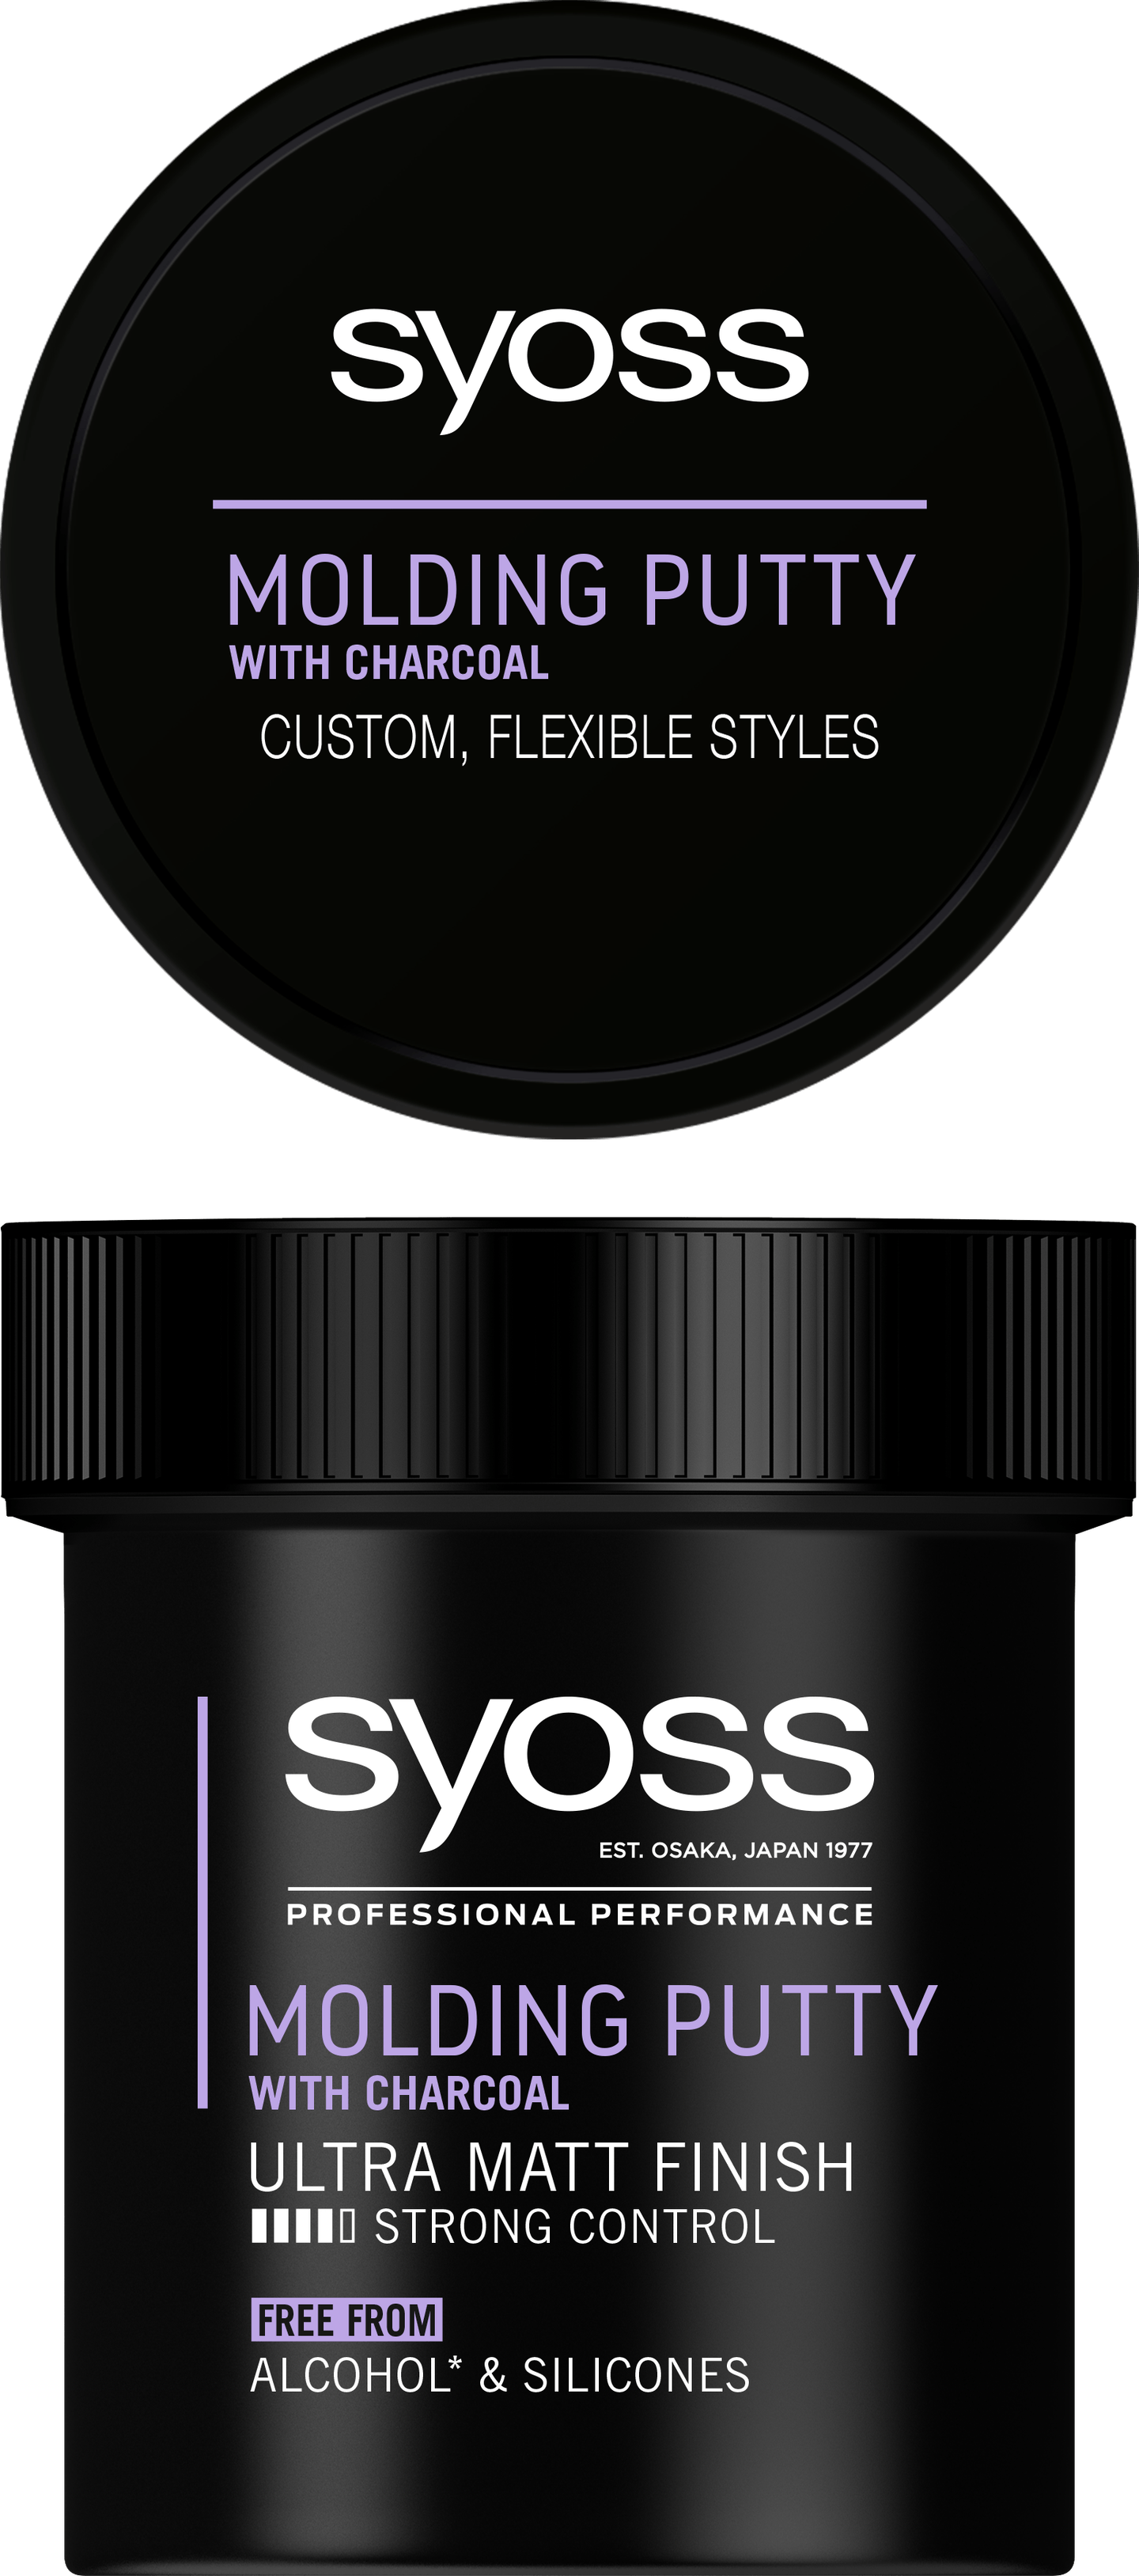 Syoss Molding Putty